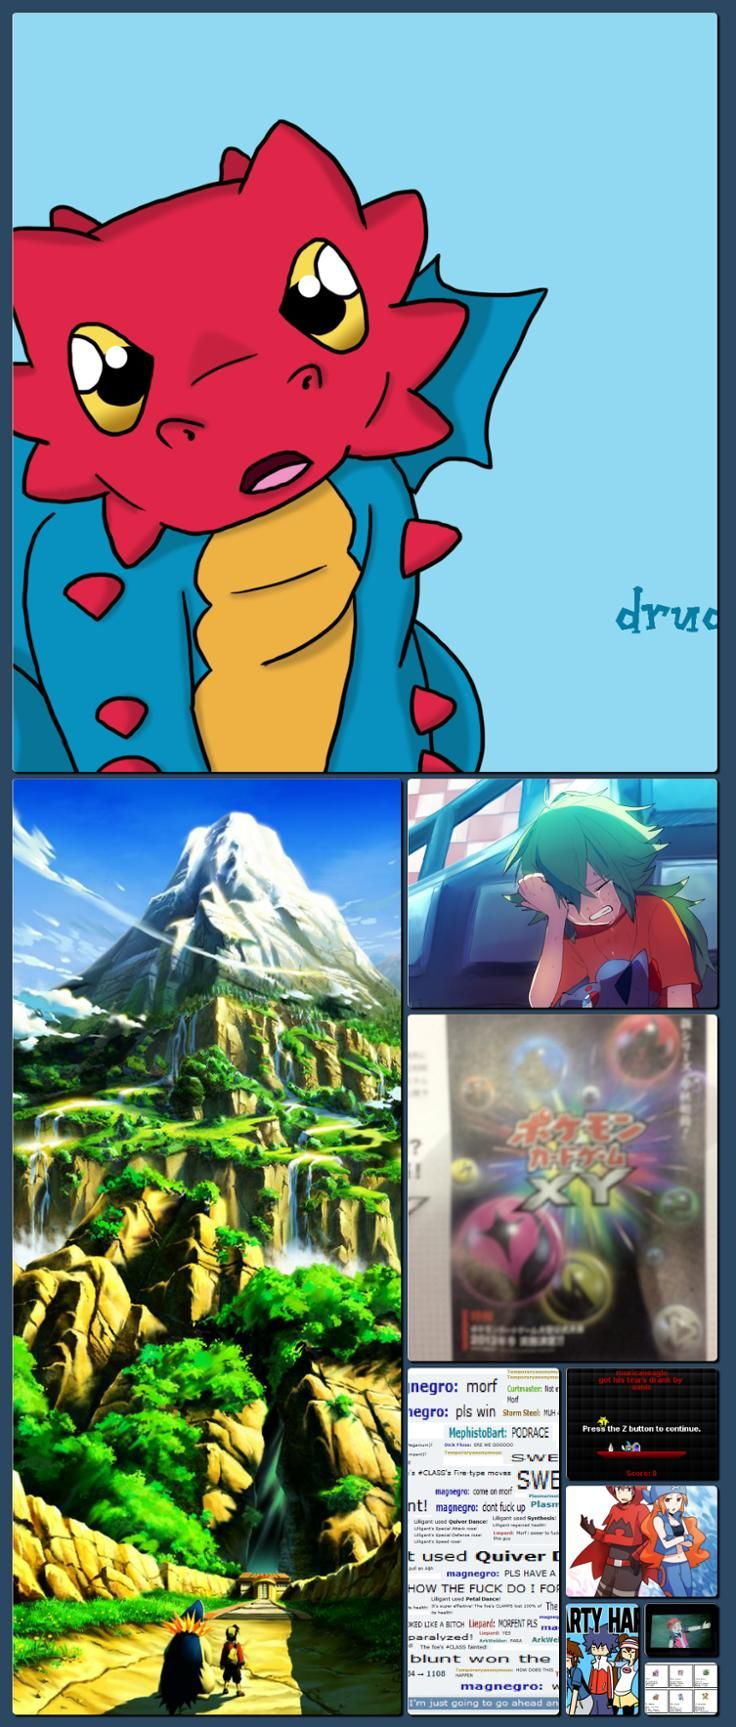 /vp/ - Pokémon [Collage made with one click using http://pagecollage.com] #pagecollage